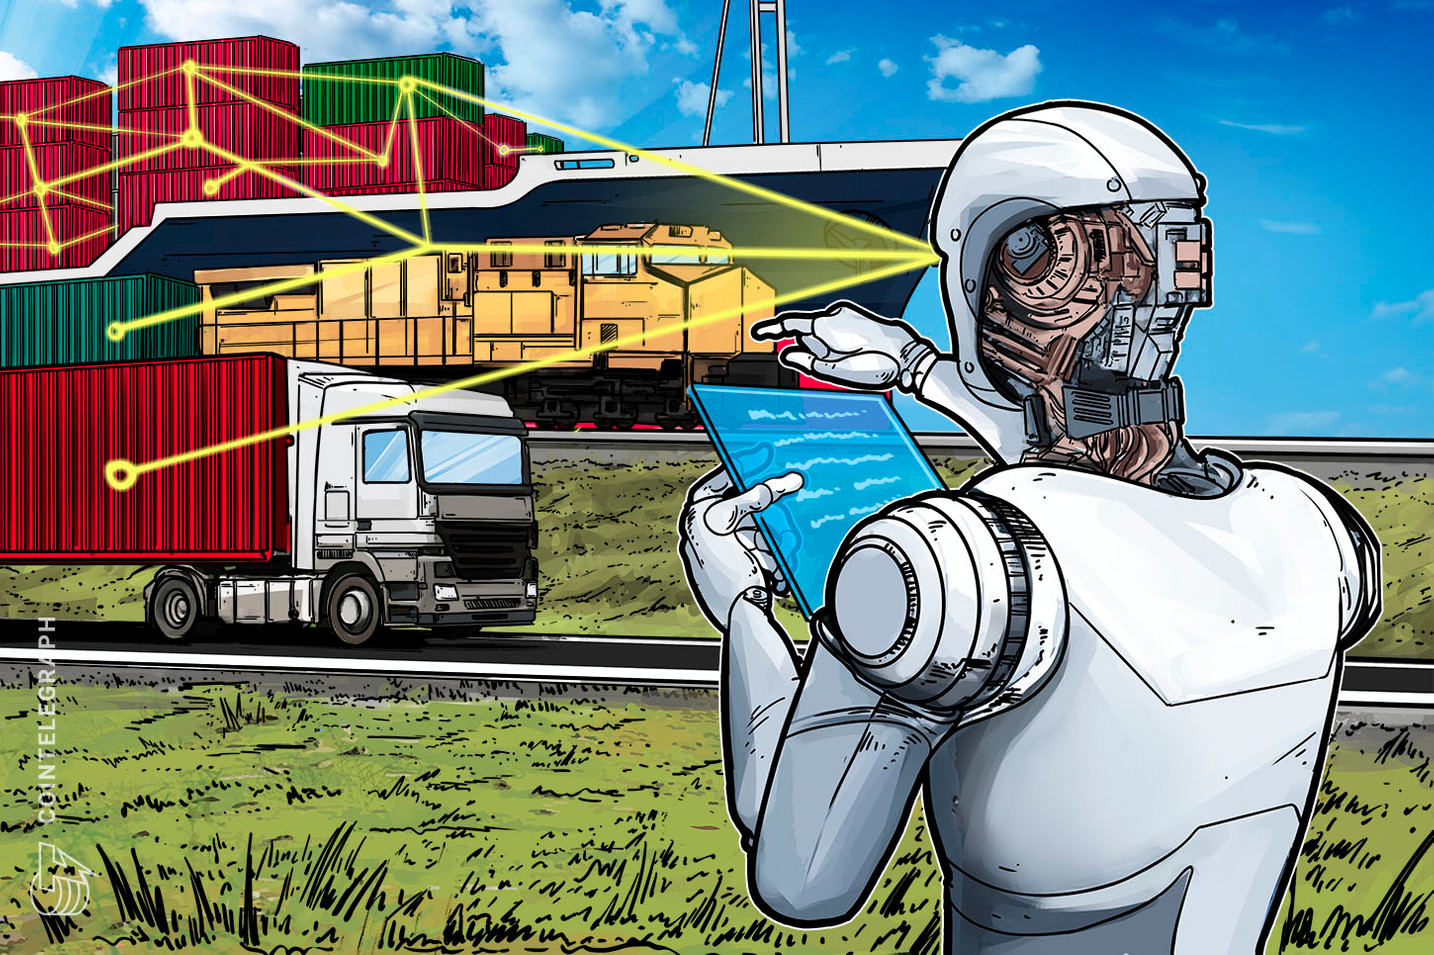 Major Mining Company BHP, Japanese Shipper NYK Deliver Biofuel Traced via Blockchain